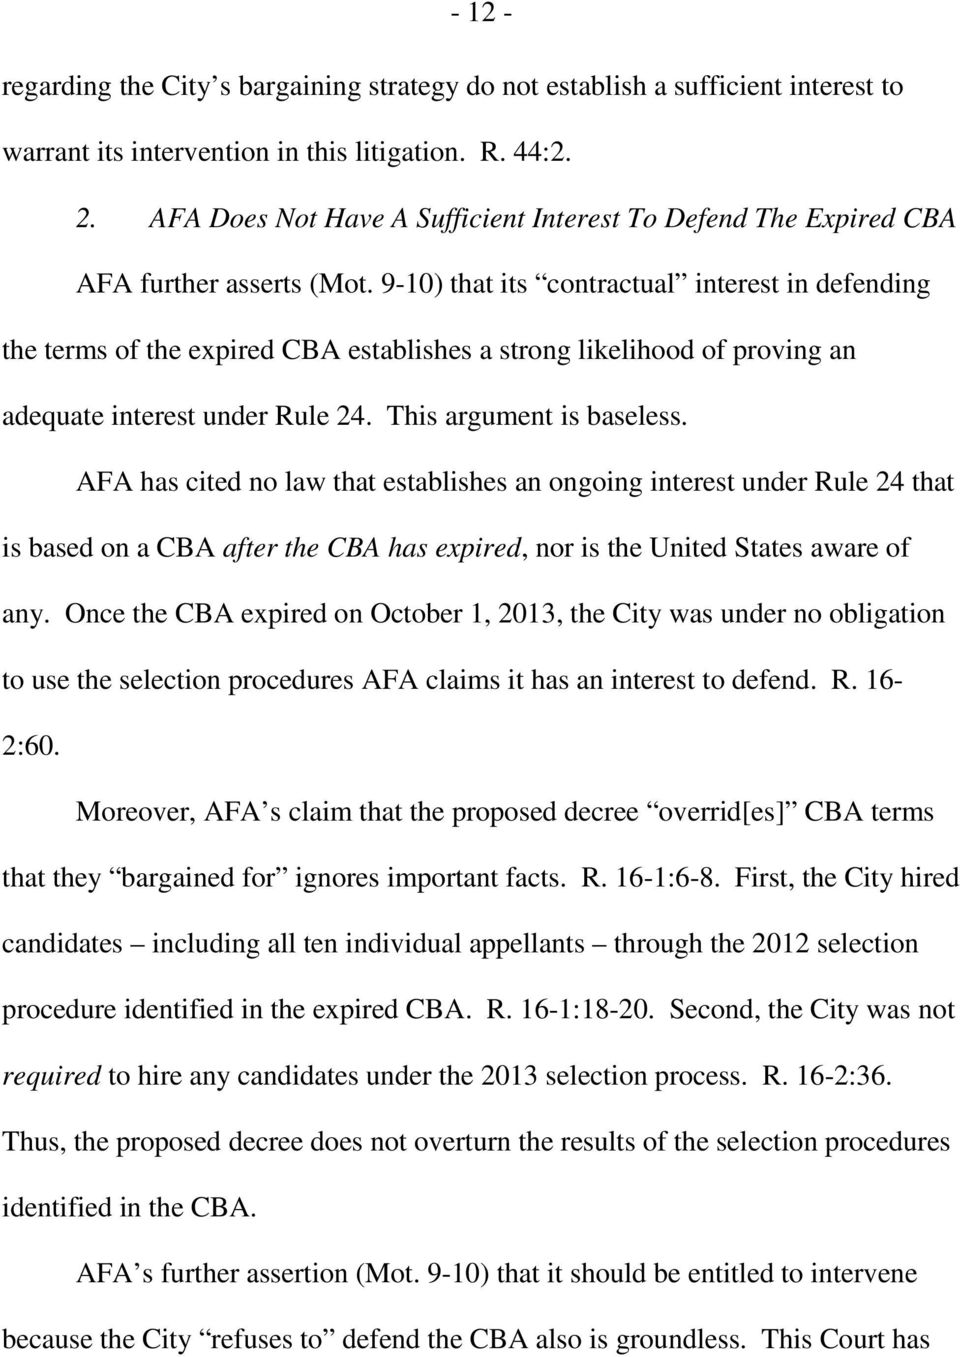 9-10) that its contractual interest in defending the terms of the expired CBA establishes a strong likelihood of proving an adequate interest under Rule 24. This argument is baseless.